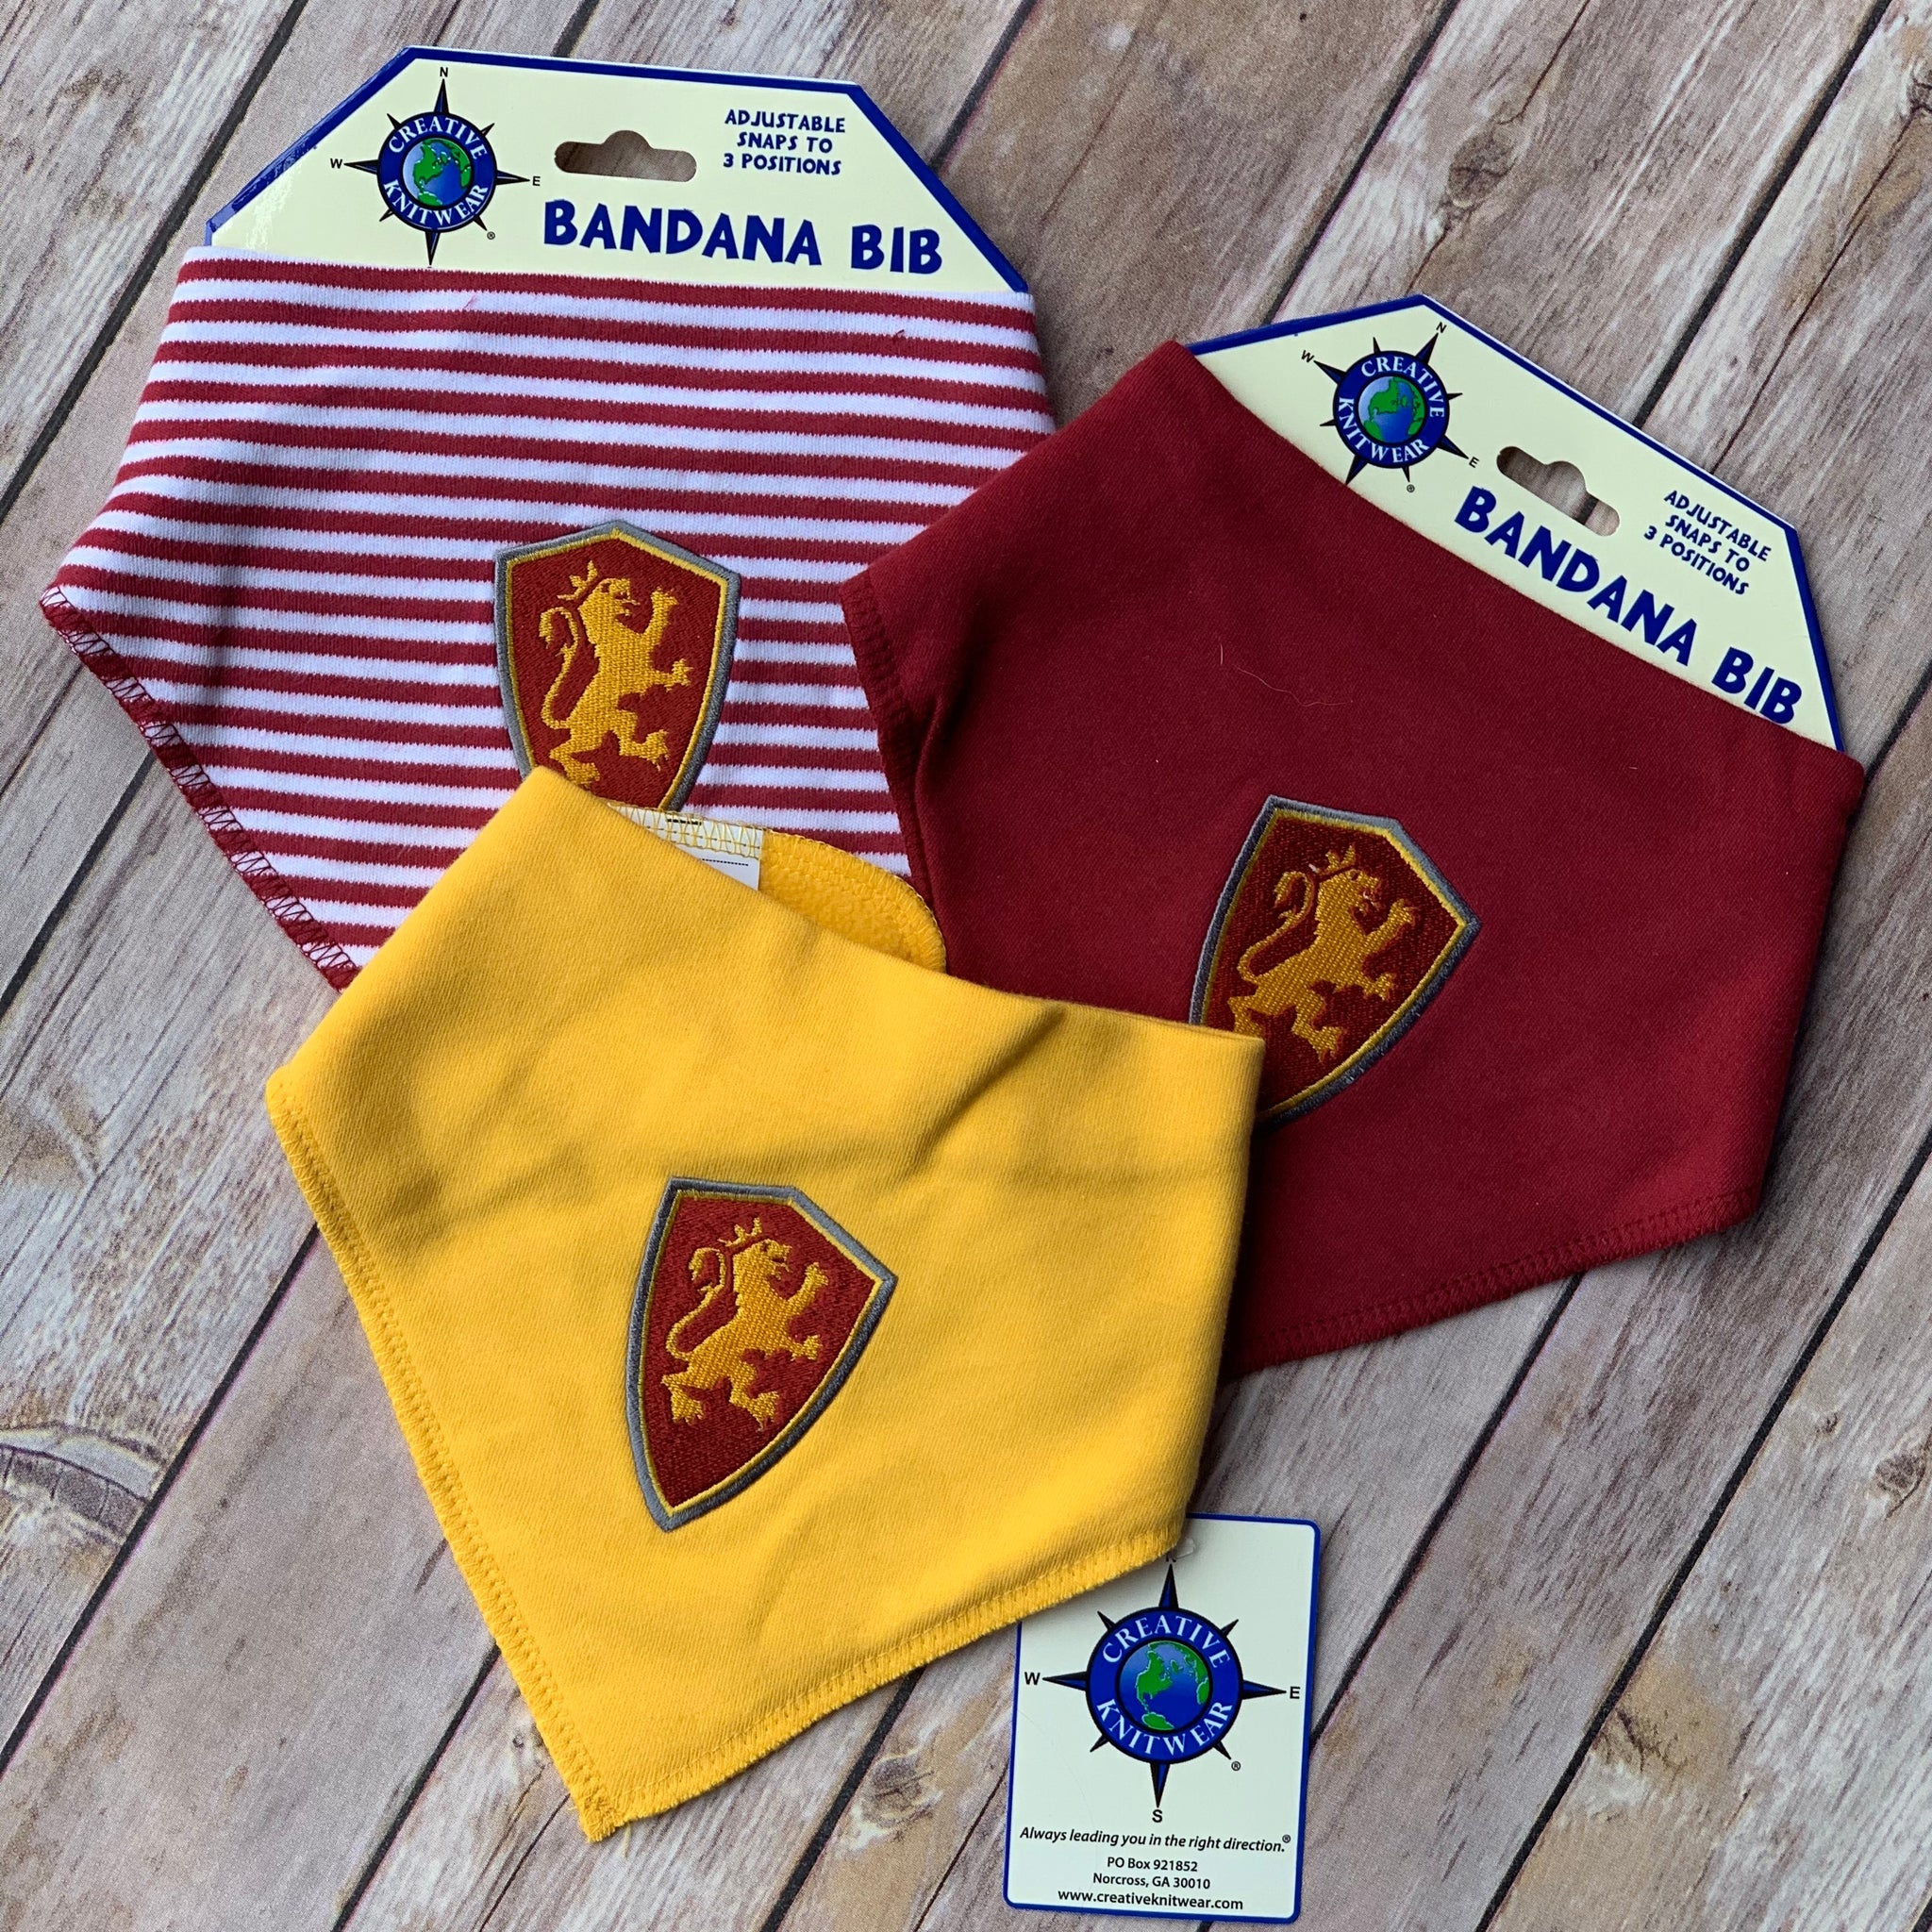 three bandanna bibs with red and yellow embroidered shield patch on front of each. The first big has red and white stripes, the second is solid yellow and the last is solid red